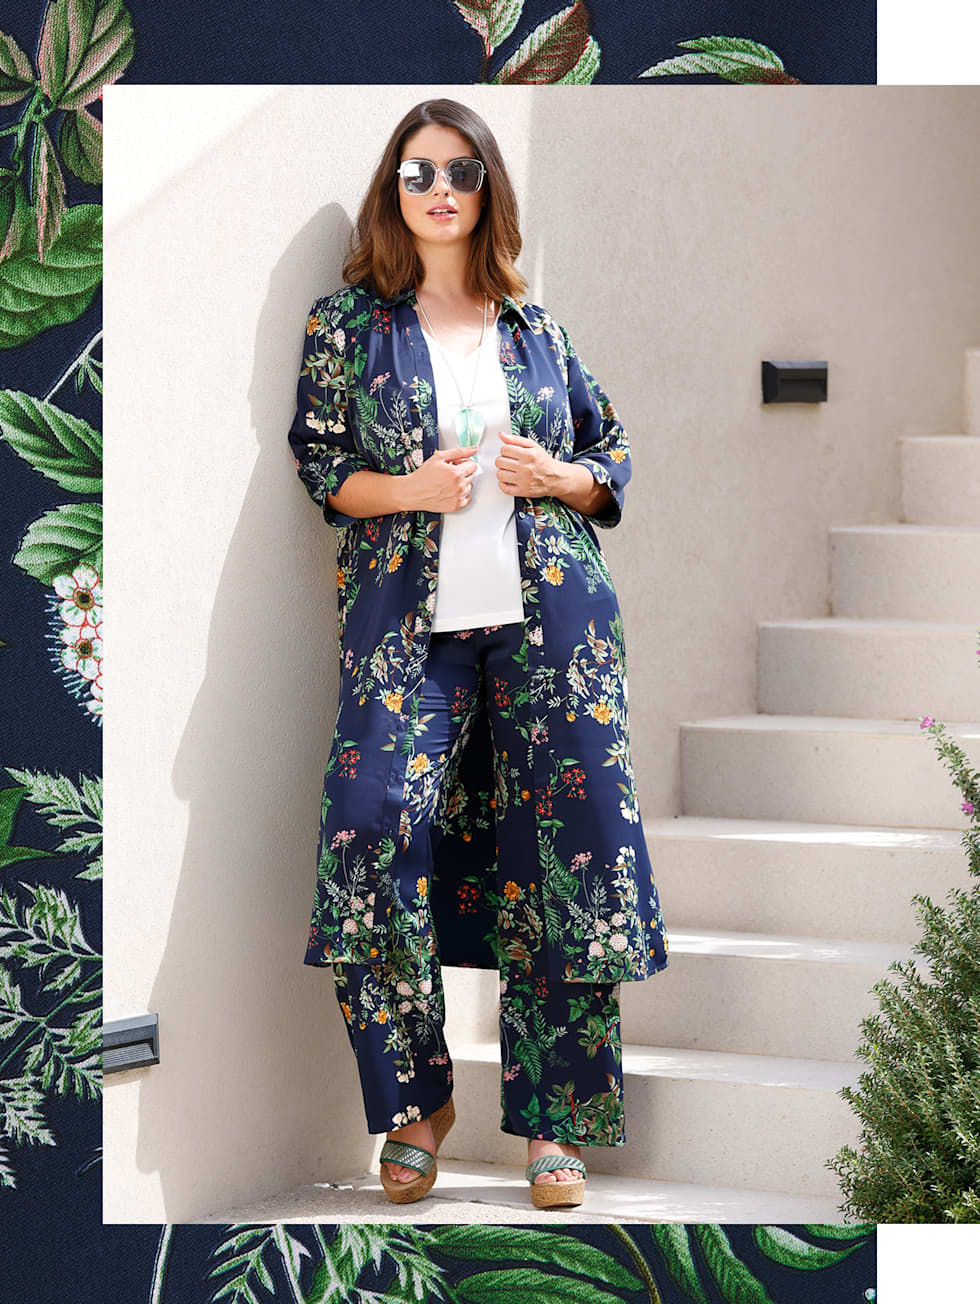 Sommer-Outfit Damen